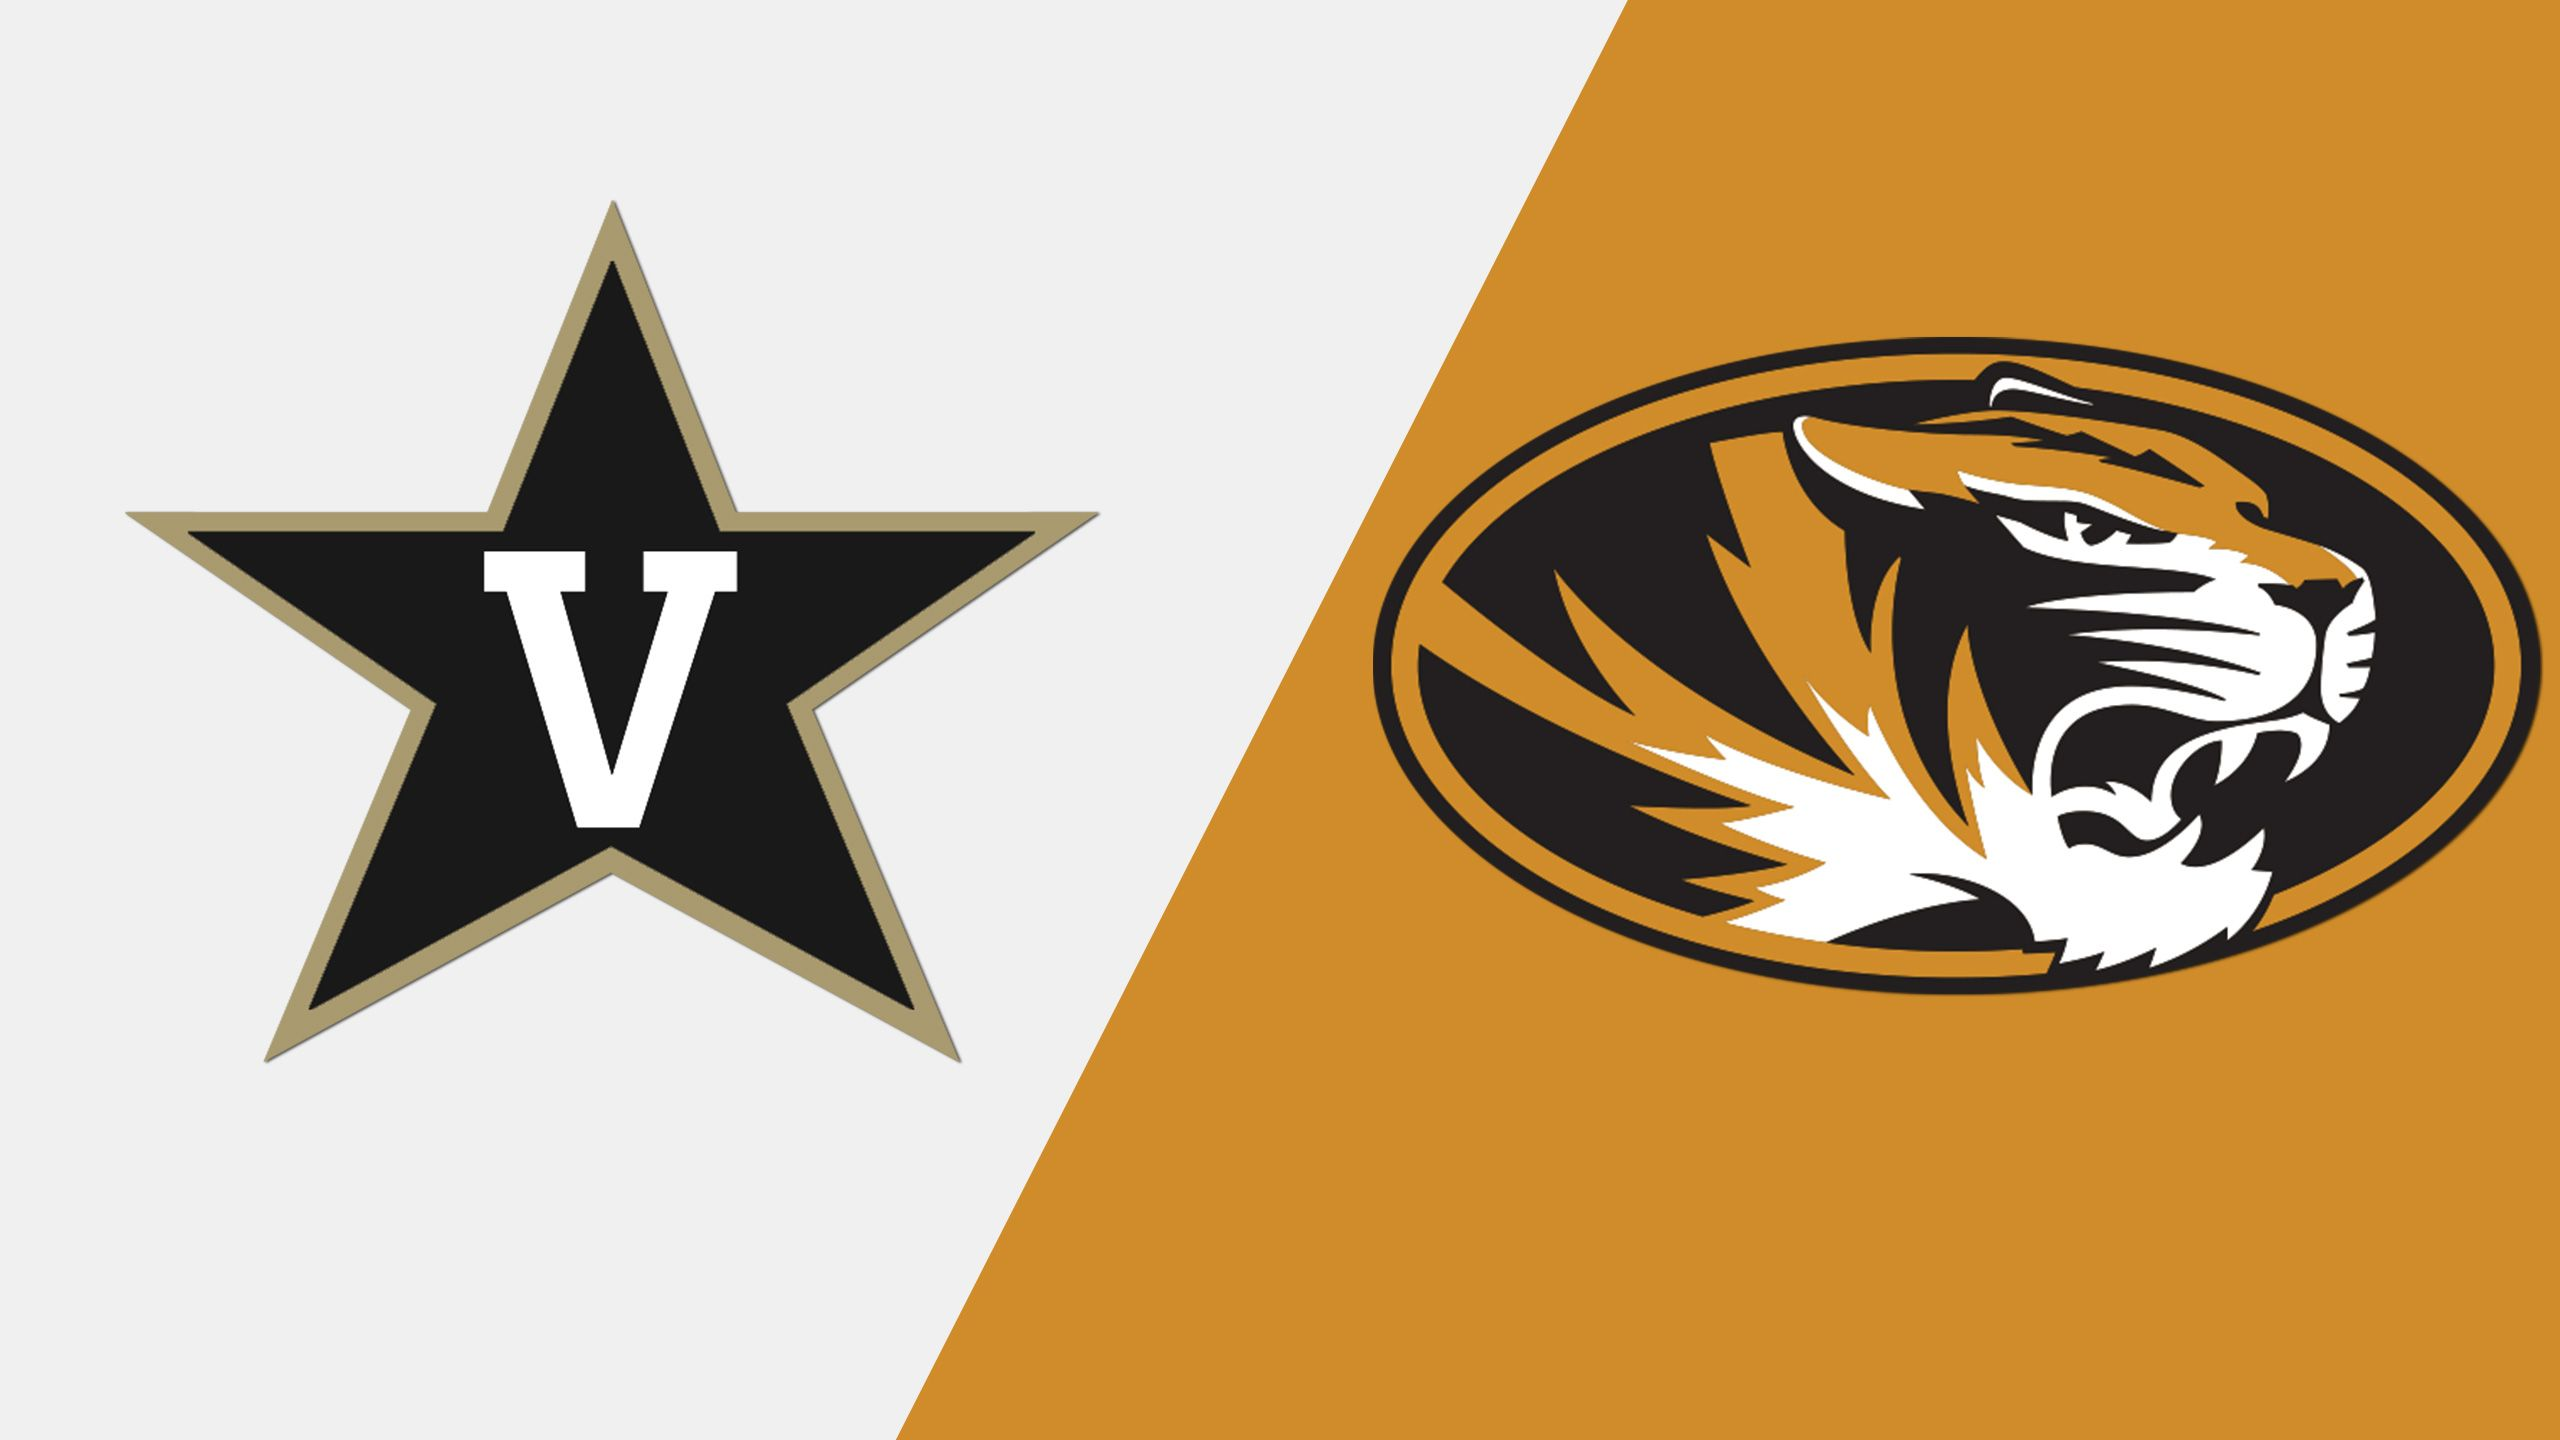 #12 Vanderbilt vs. Missouri (Baseball)